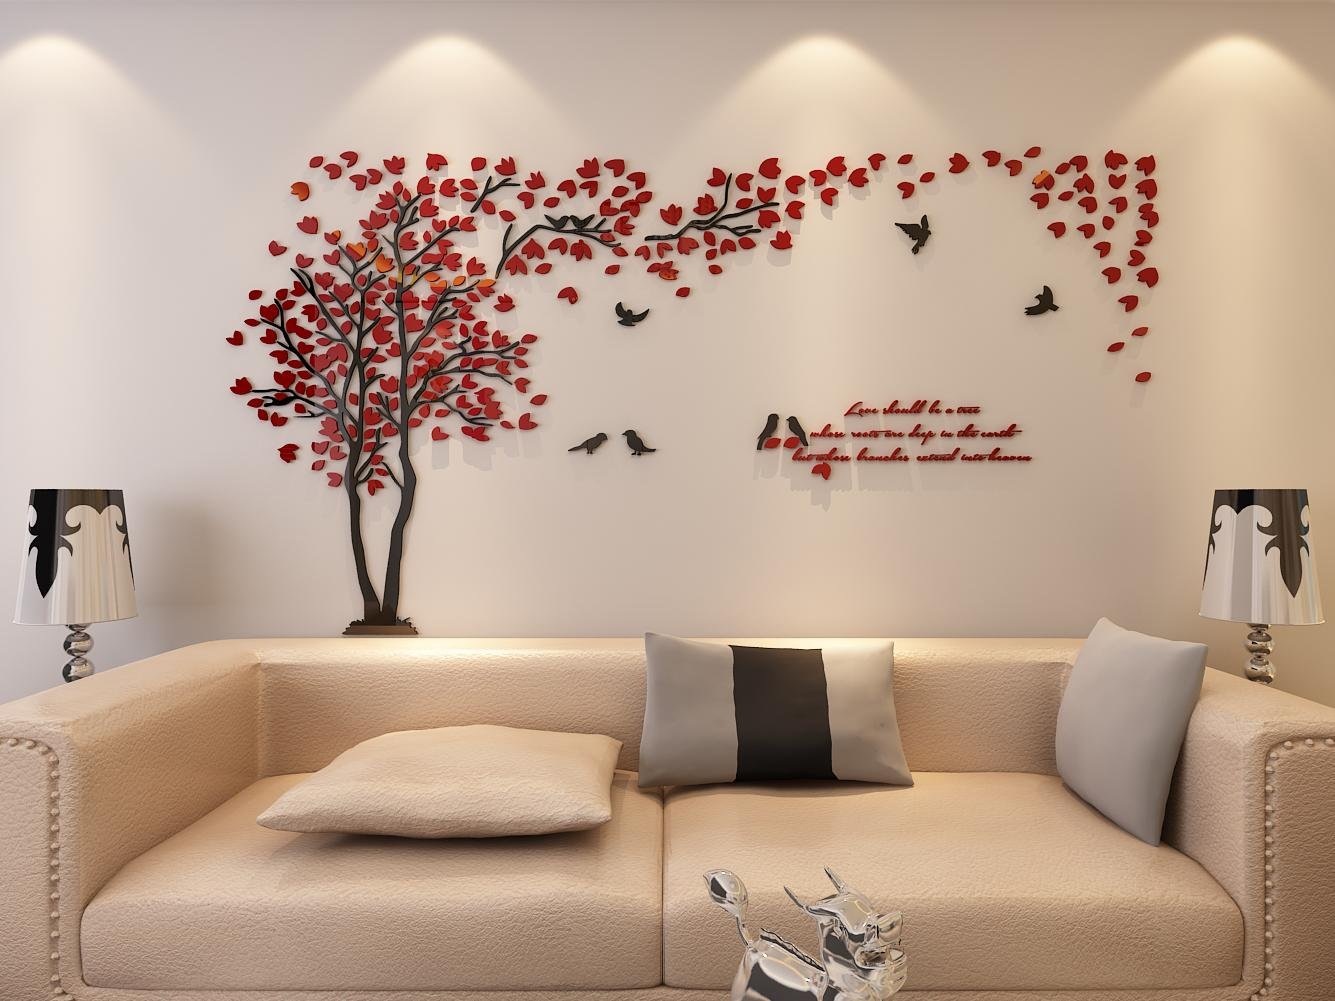 Amazon.com: 3d Couple Tree Wall Murals For Living Room Bedroom Sofa  Backdrop Tv Wall Background, Originality Stickers Gift, DIY Wall Decal Home  Decor Art ...